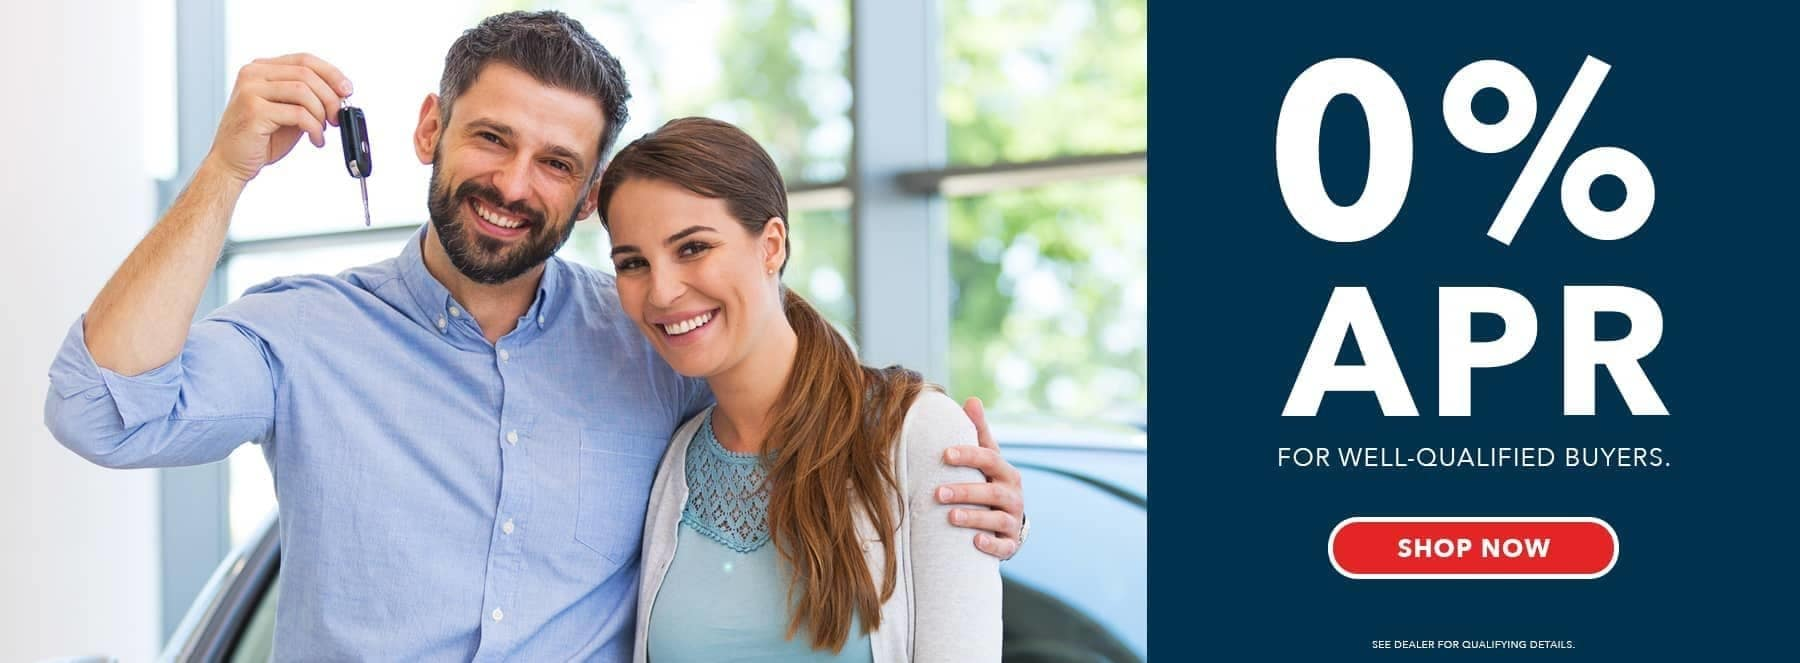 A couple holding a car key and smiling, 0% APR banner